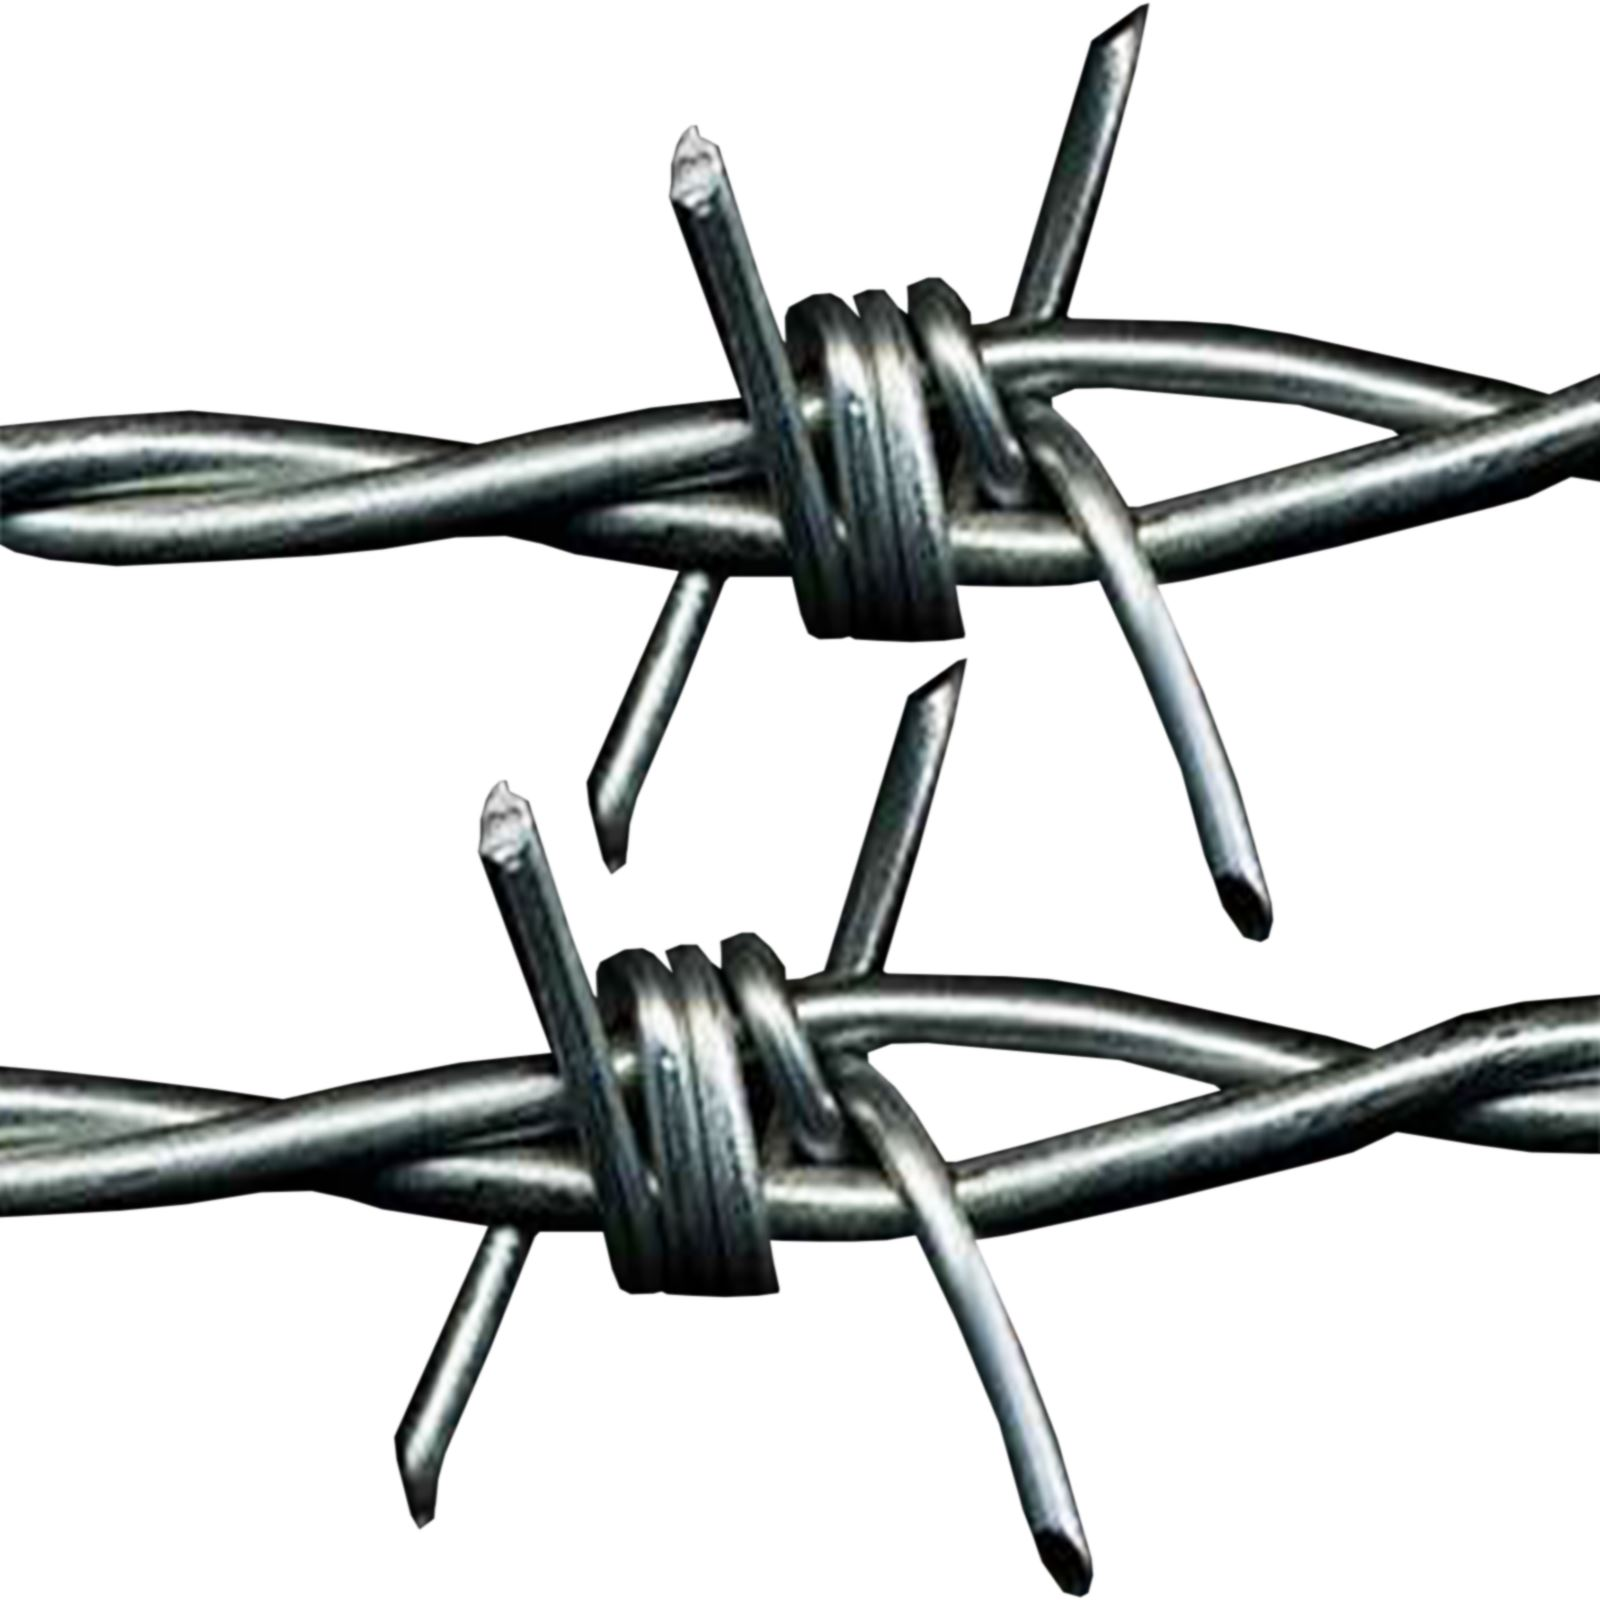 30m X 1 6mm Barbed Wire Galvanised Steel Barbed Wire In